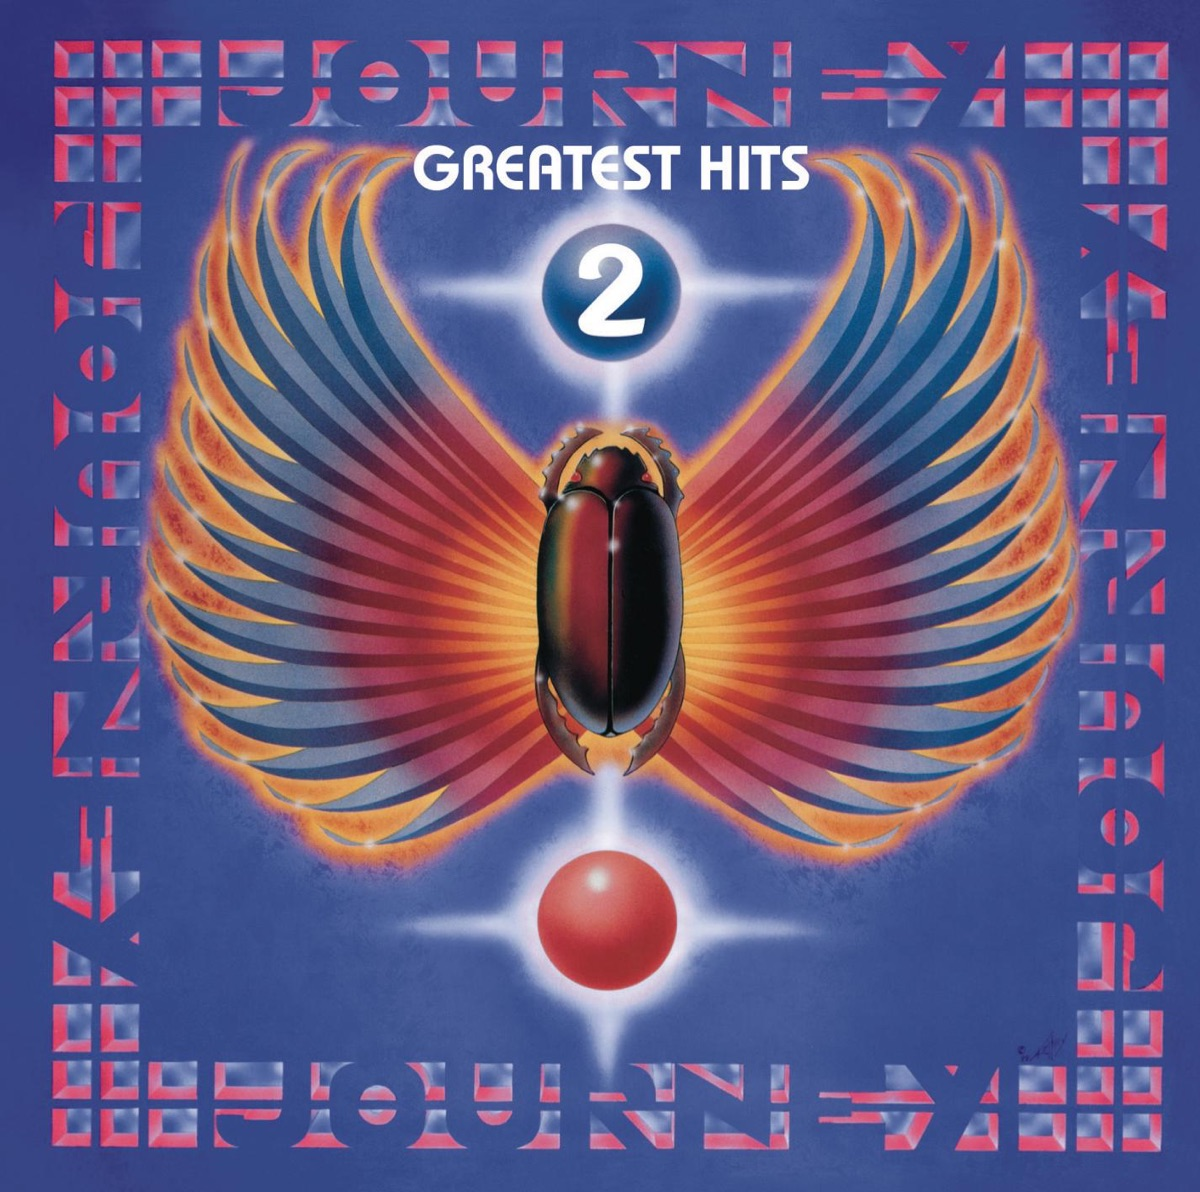 Greatest Hits 2 Journey CD cover